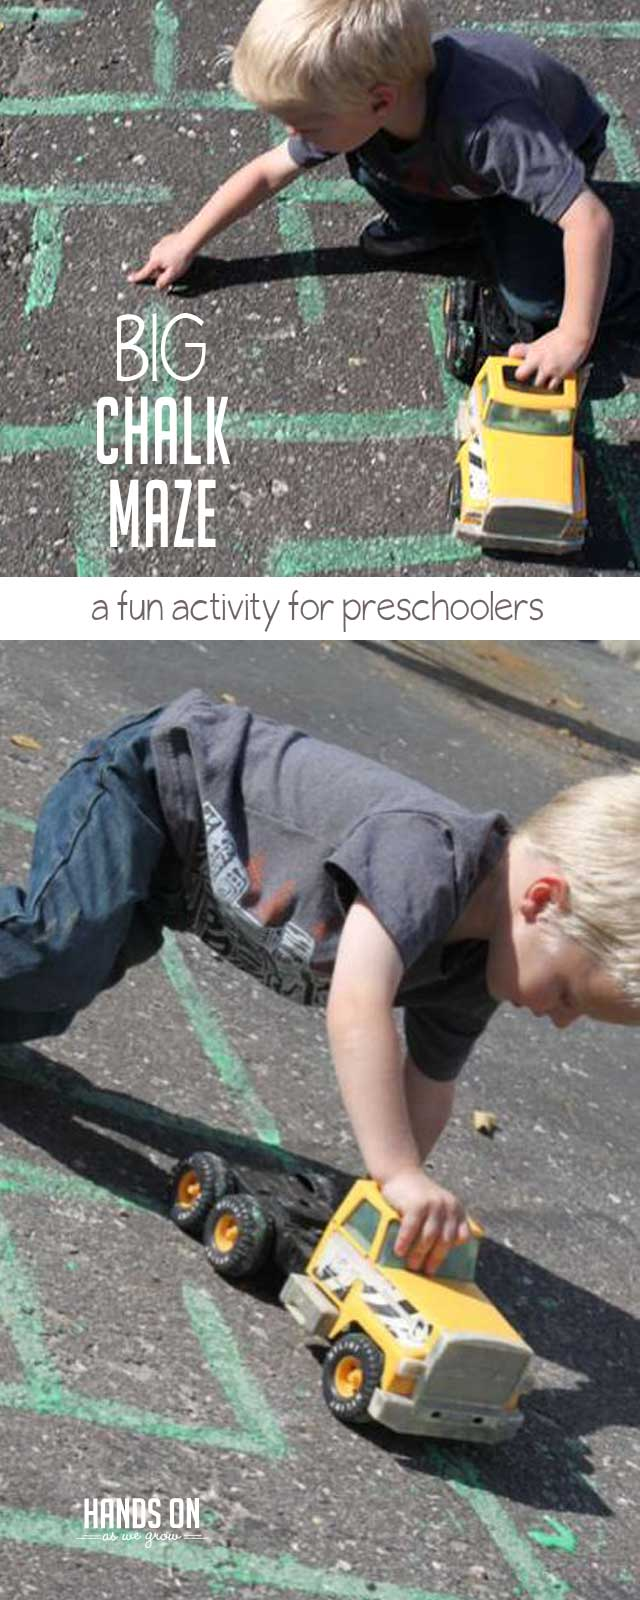 Make a big chalk maze for preschoolers using homemade sidewalk chalk paint. It's a fun and easy way to practice problem-solving. Plus, their cars and trucks will have the ideal place to drive around.